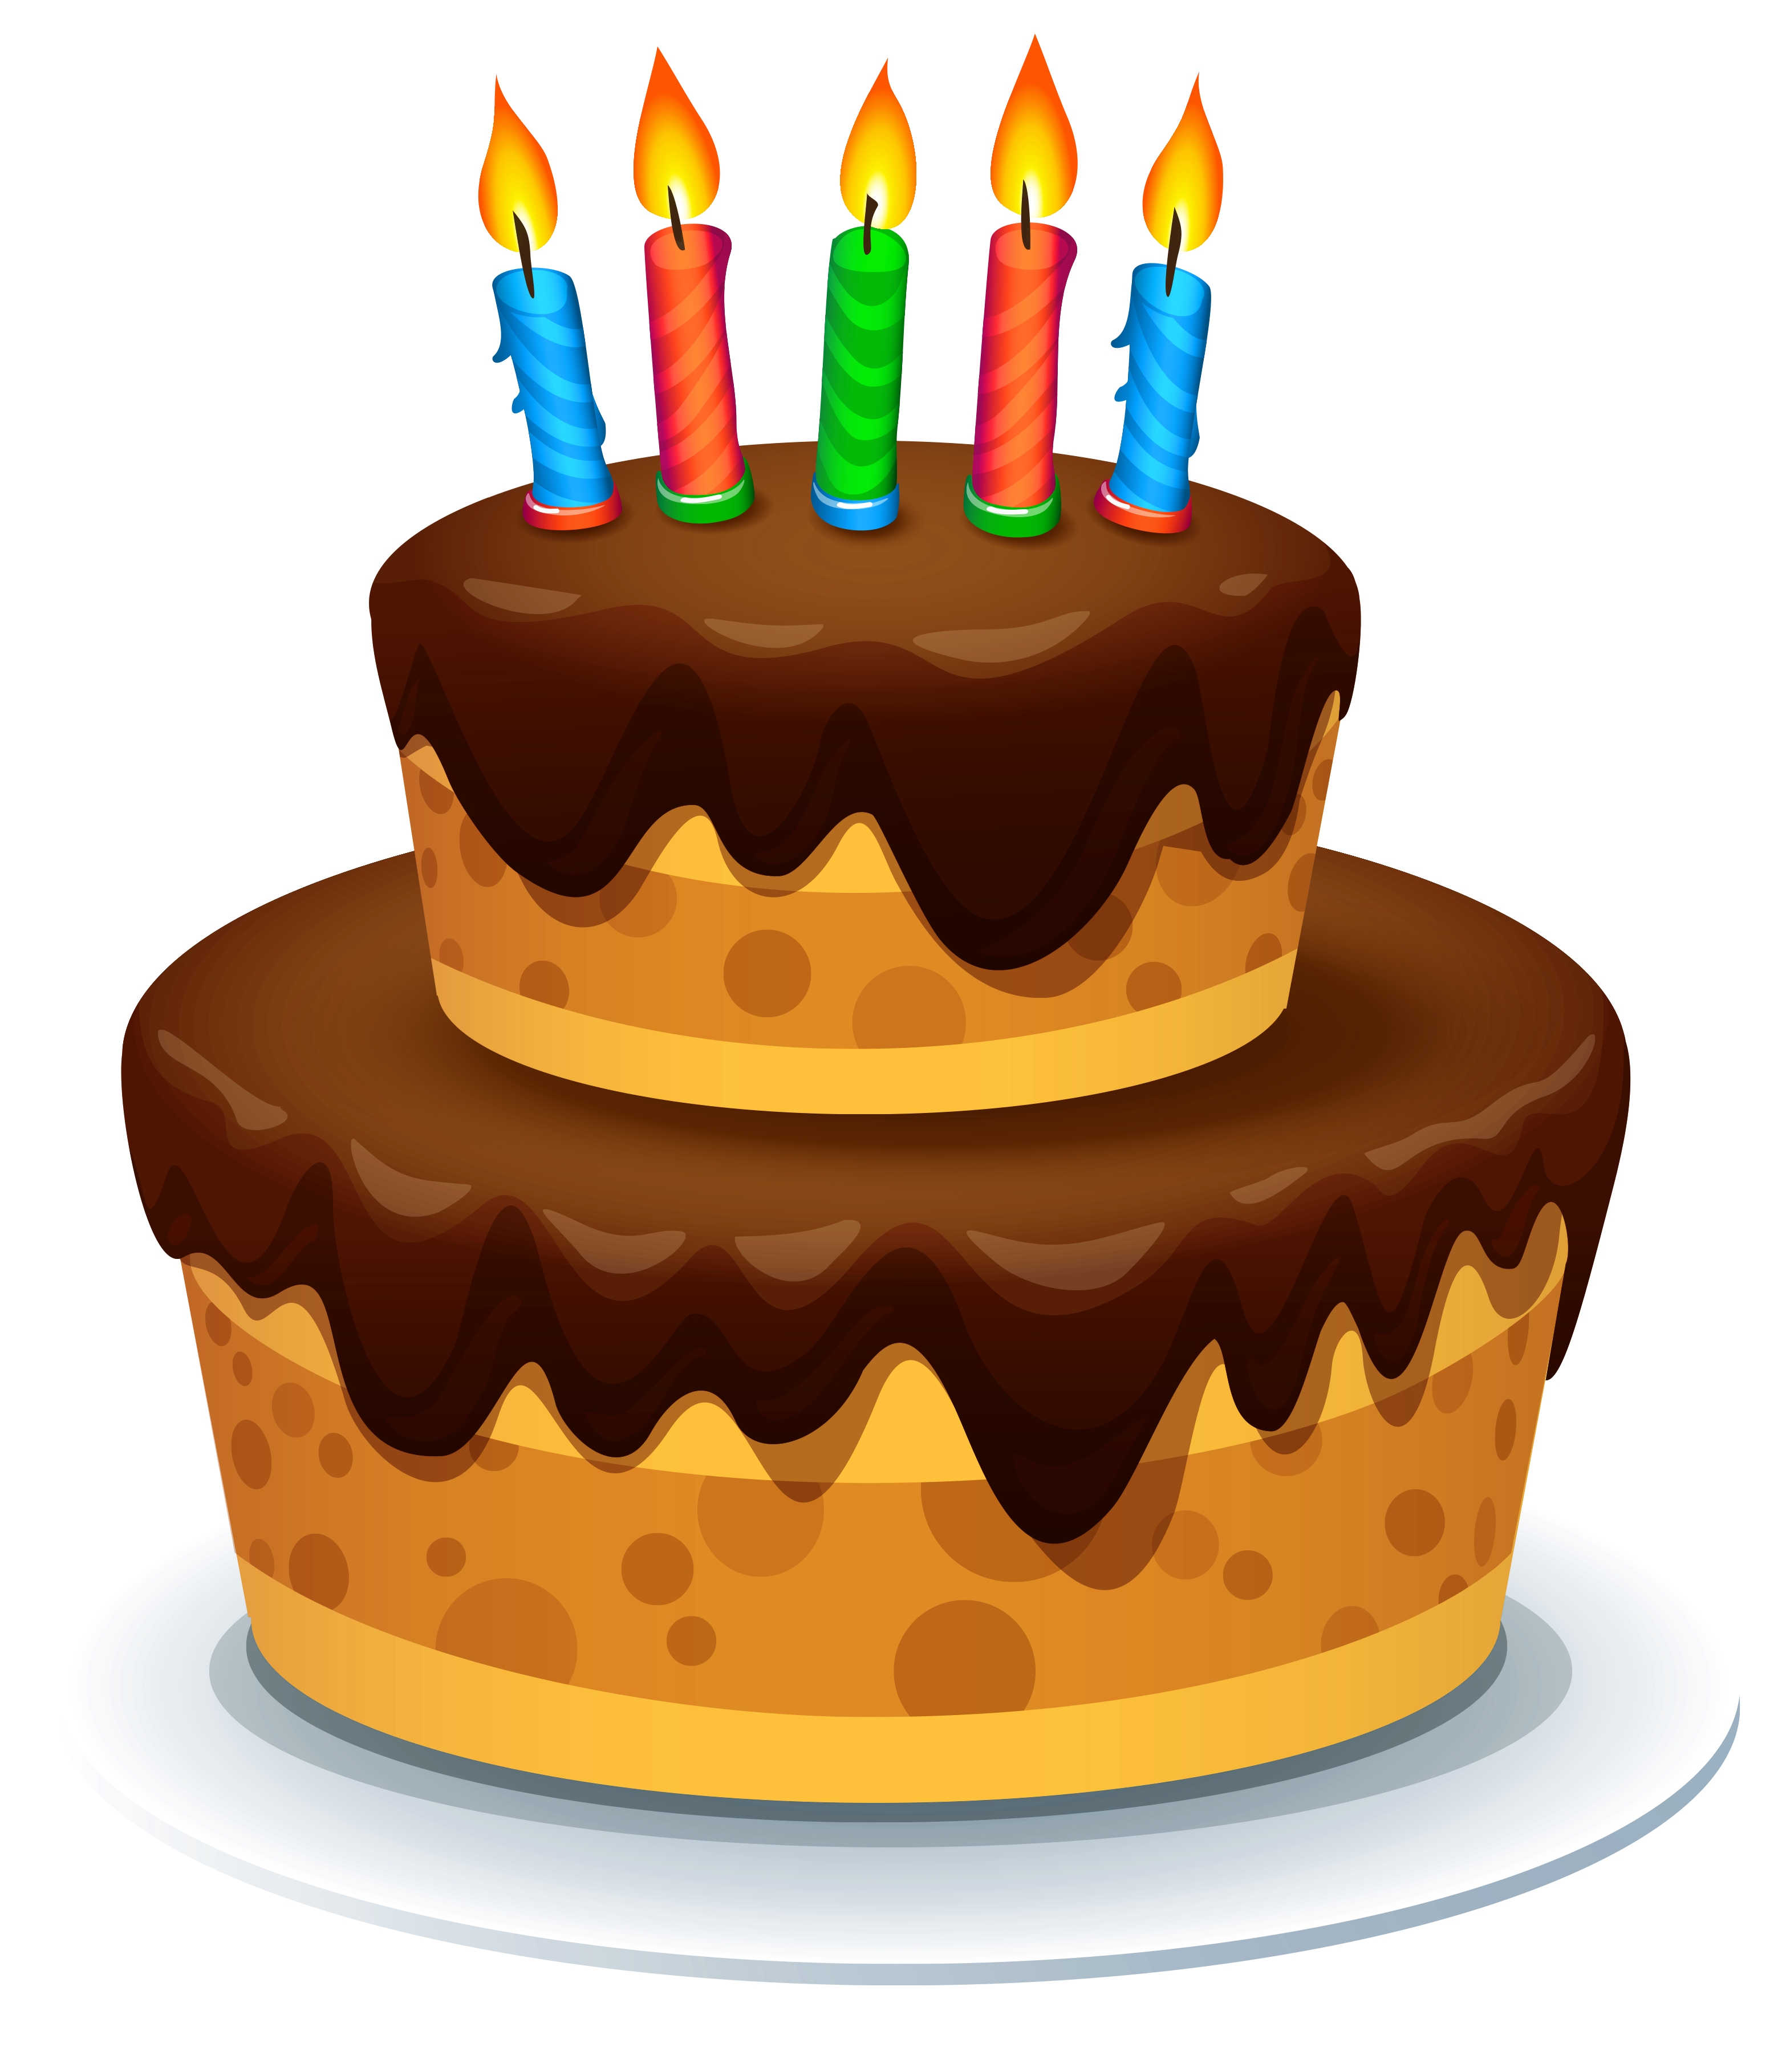 Cake with Candles PNG Clipart Image.